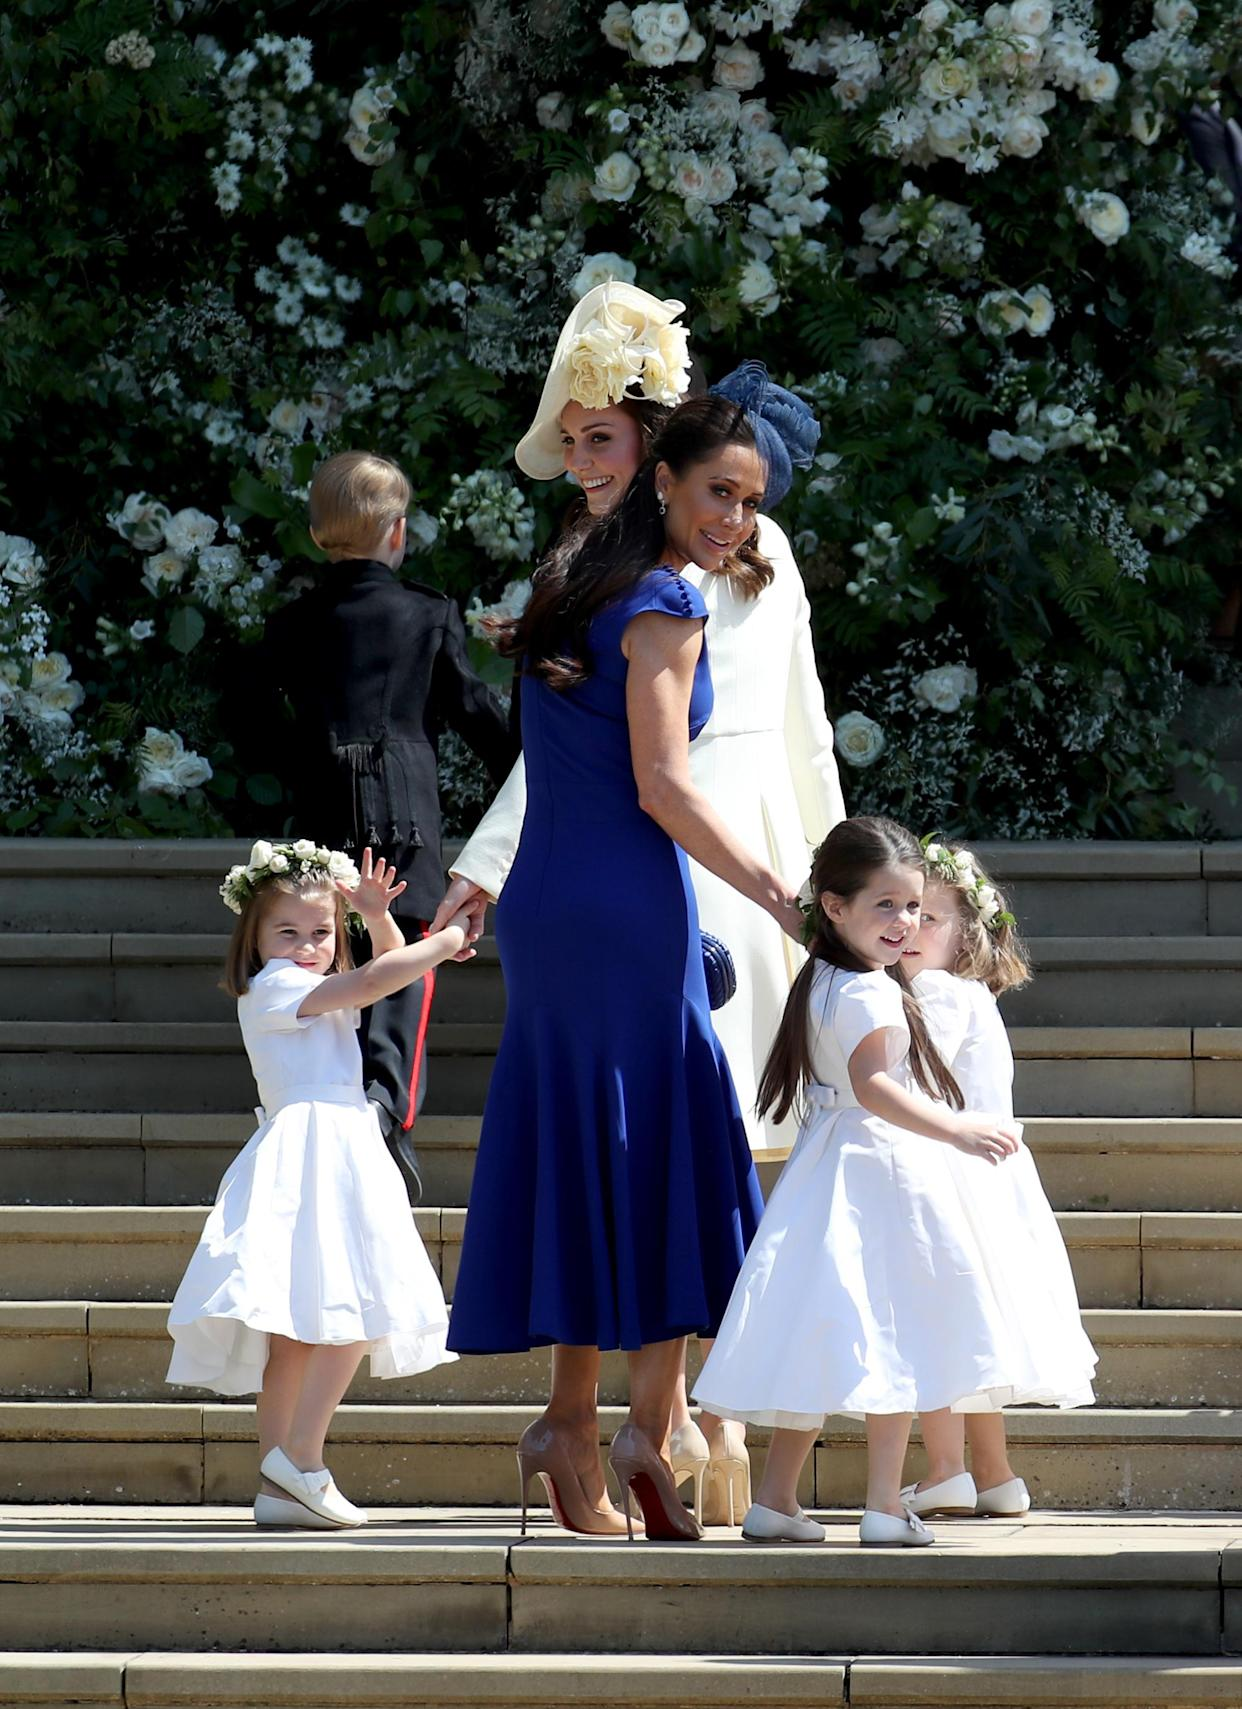 Princess Charlotte further cemented her status as a fashion muse at the royal wedding [Photo: Getty]